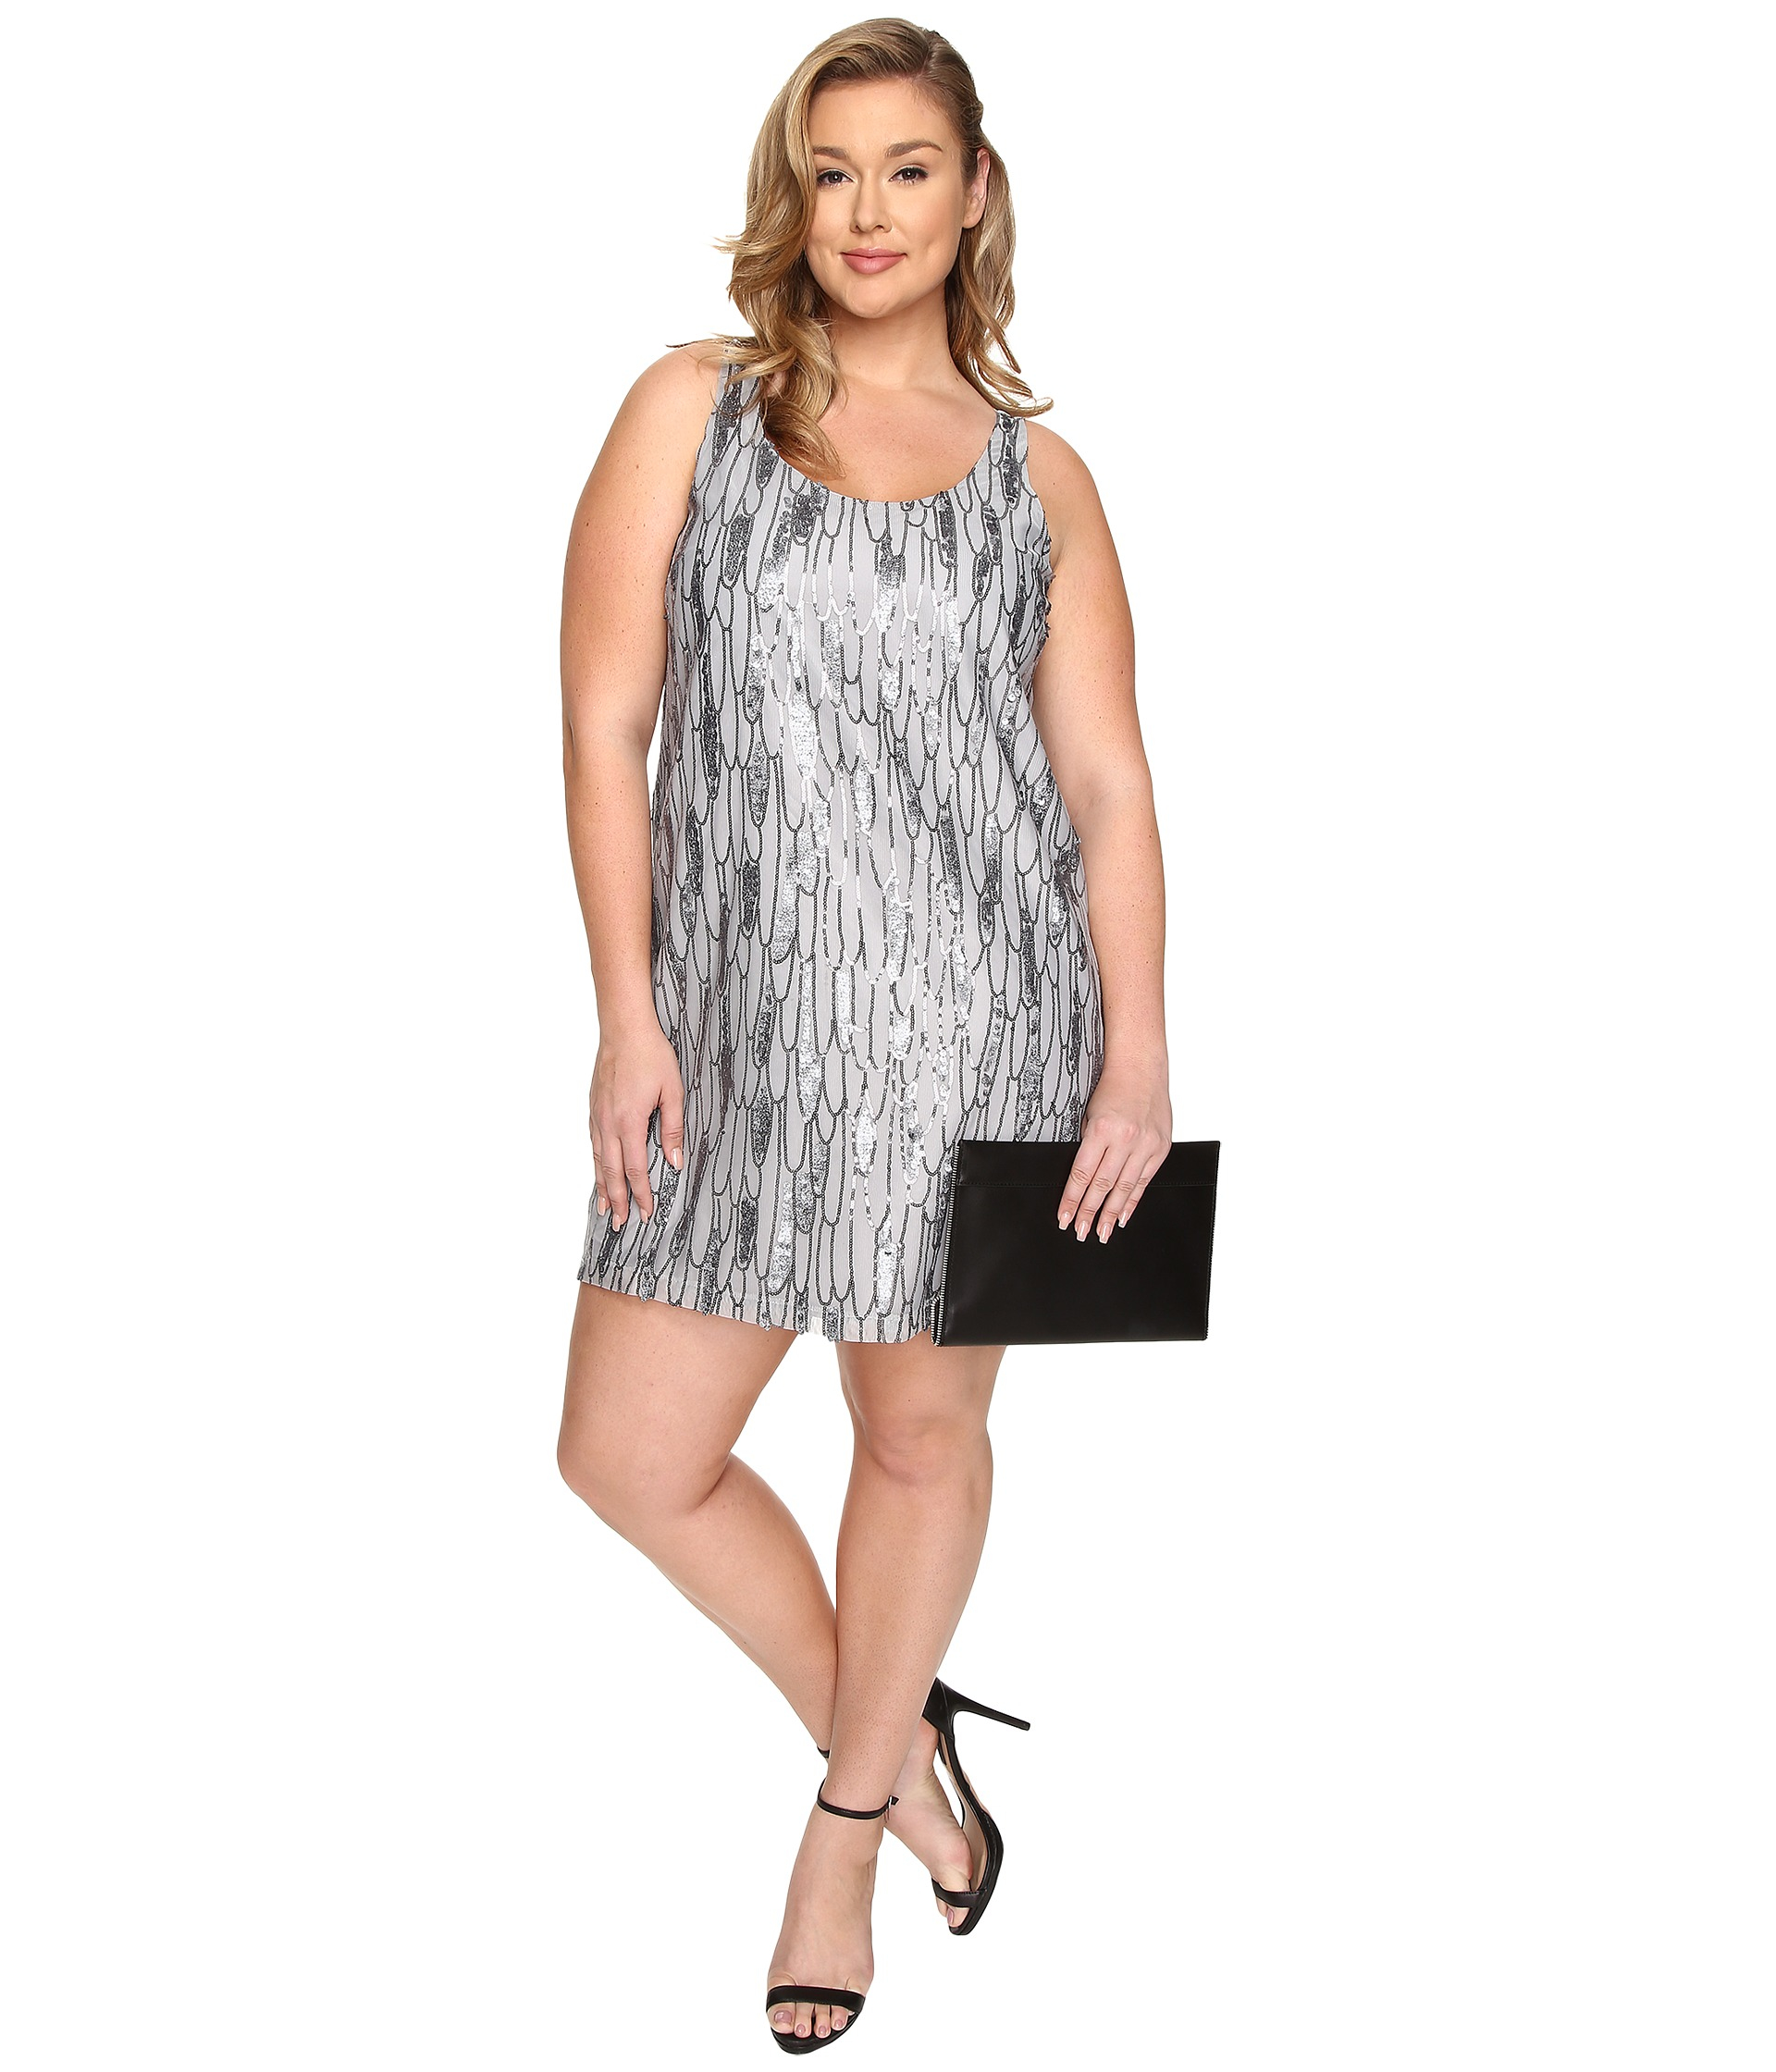 Plus Size Sequin Shift Dress – Fashion dresses